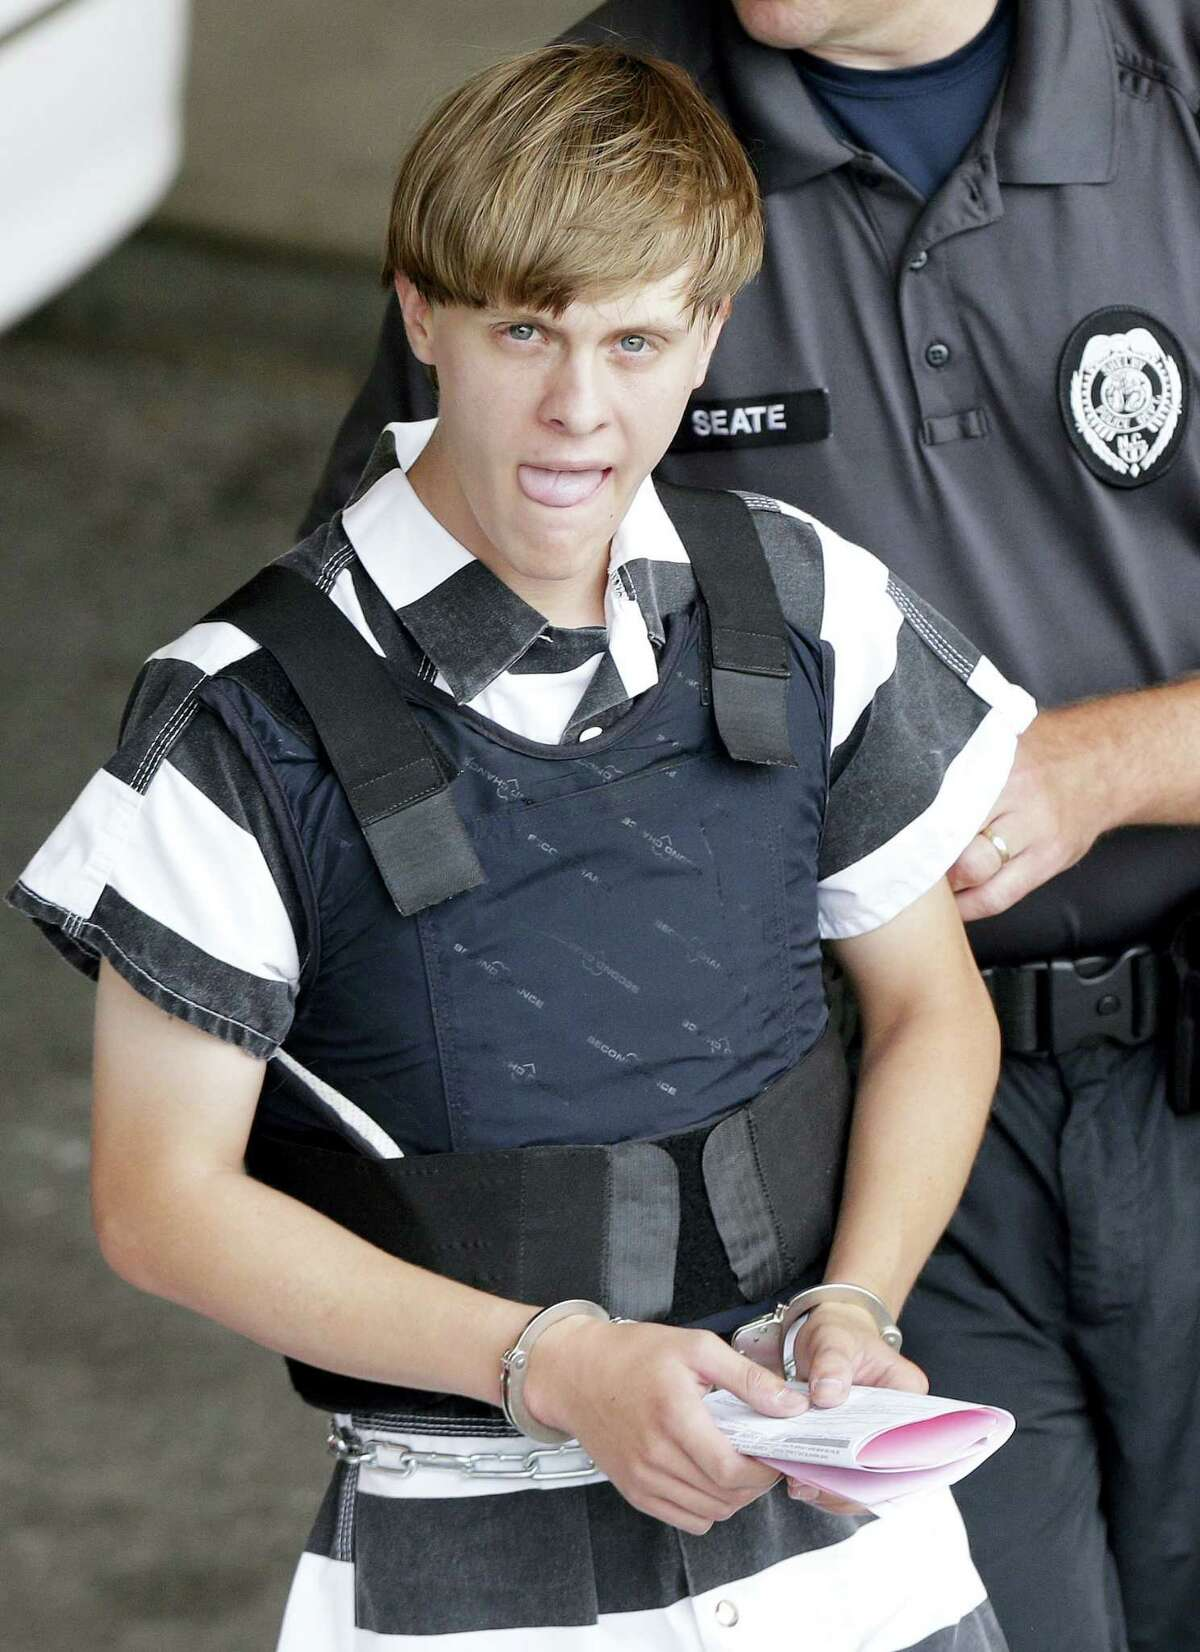 Dylann Storm Roof is escorted from the Cleveland County Courthouse in Shelby, N.C. in 2015.